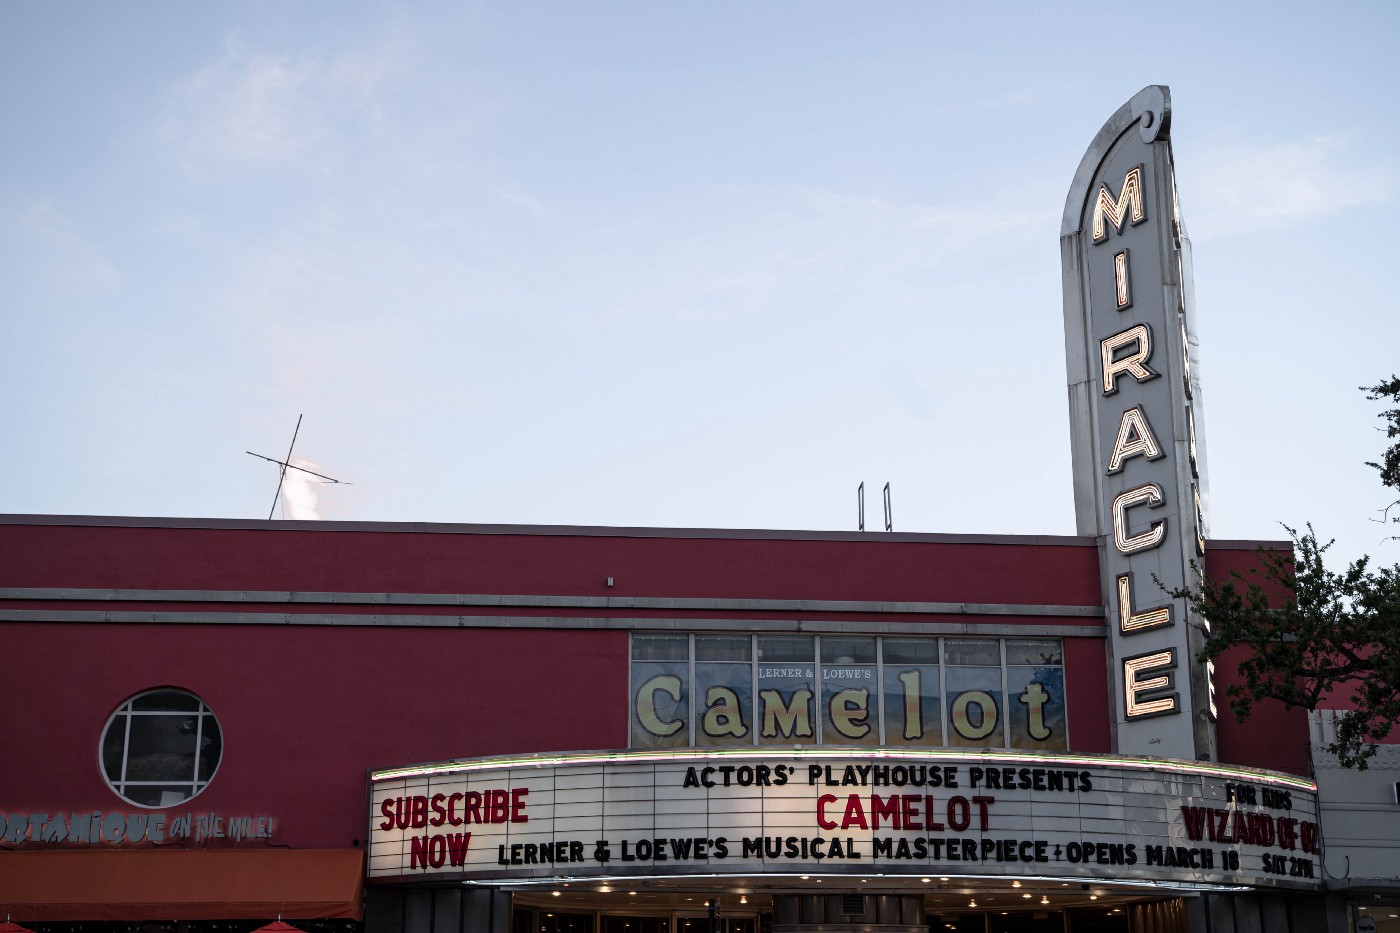 photo of movie theater named Miracle showing movie Camelot